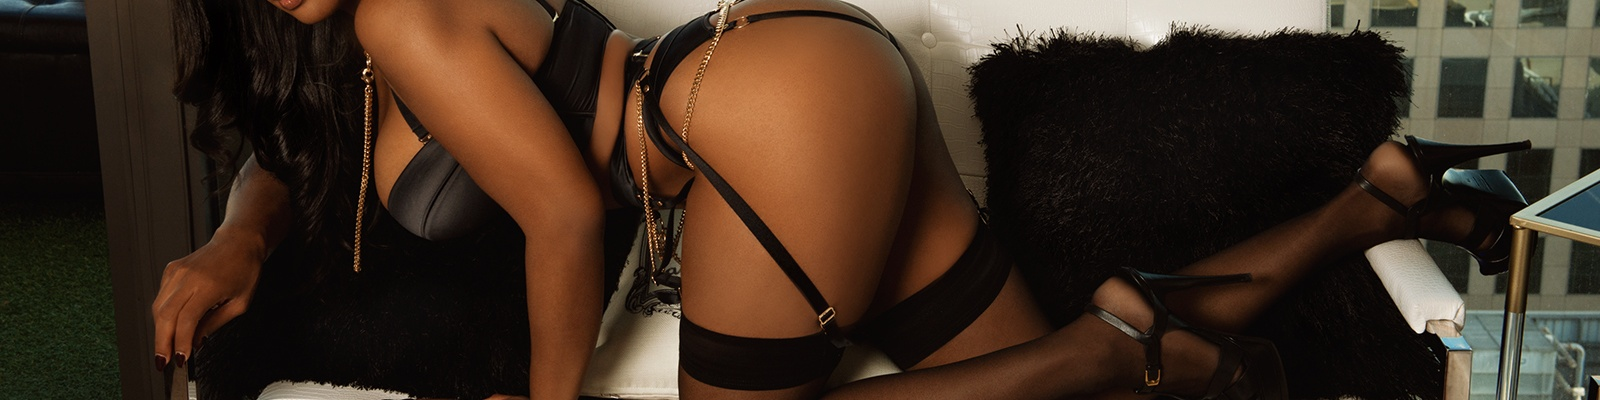 Maia L'amour's Cover Photo